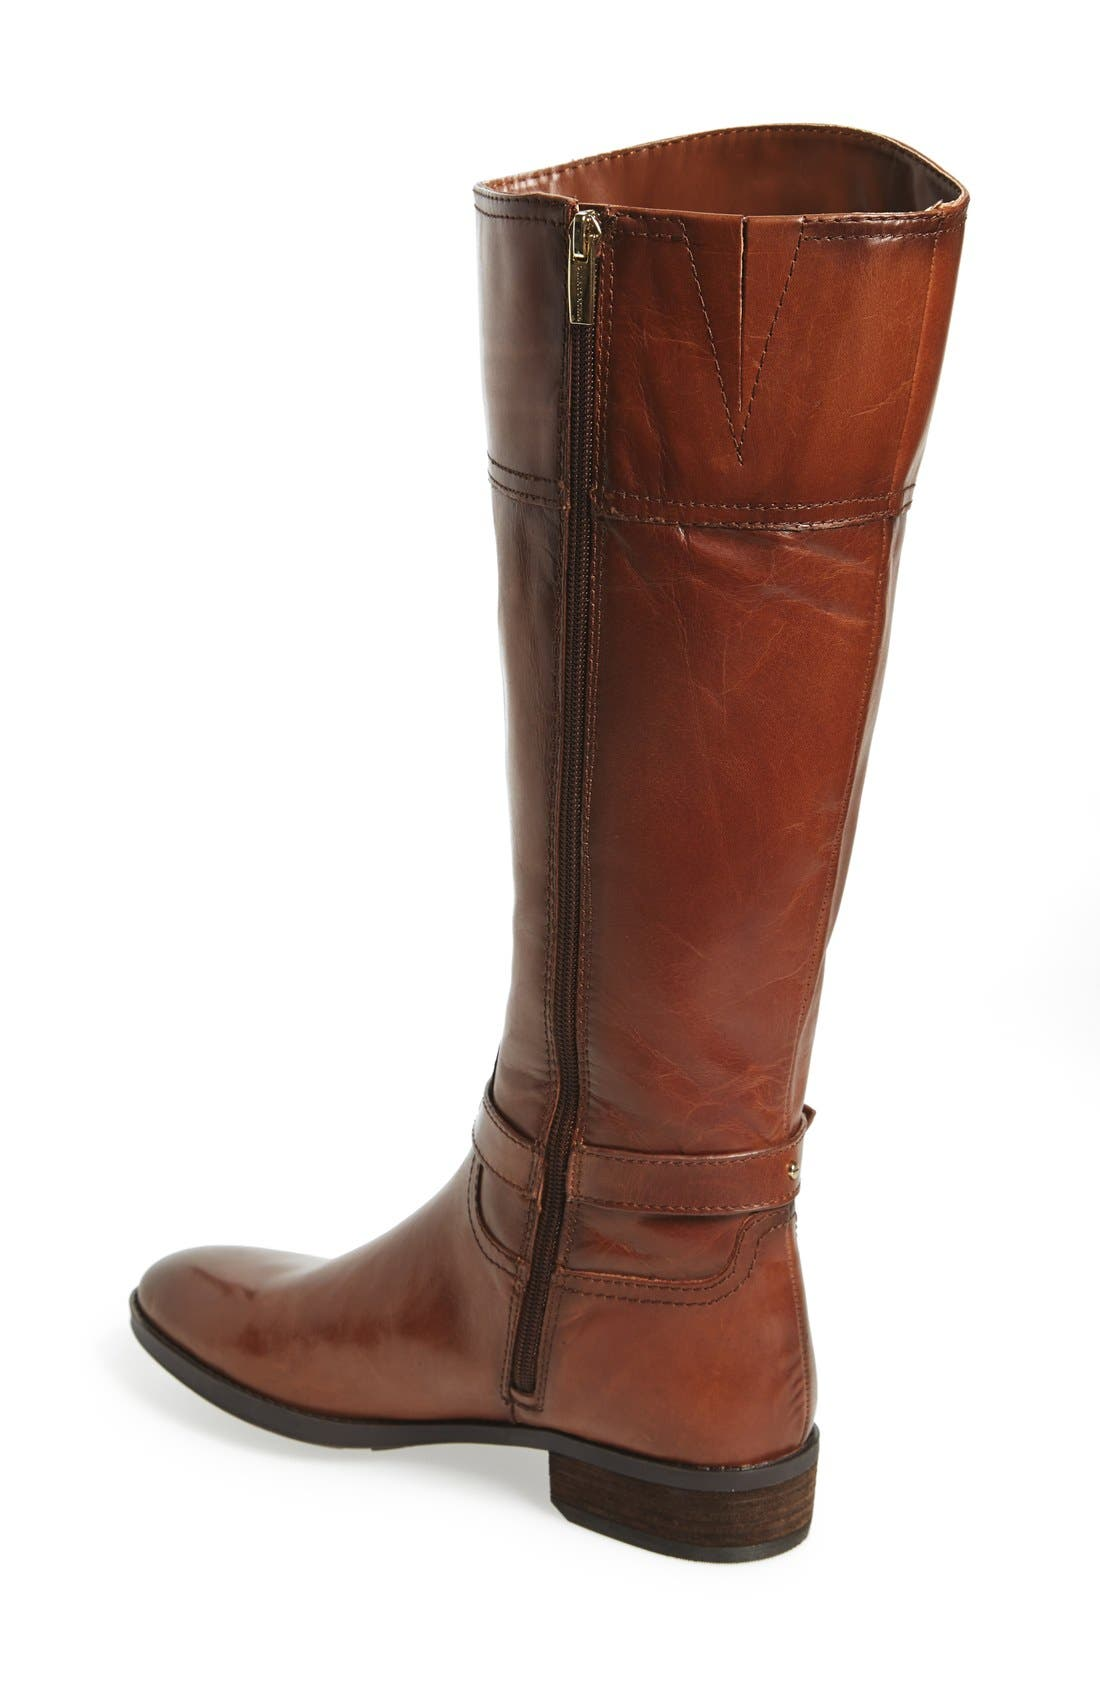 Alternate Image 2  - Vince Camuto 'Phillie' Tall Riding Boot (Women) (Regular & Extended Calf)